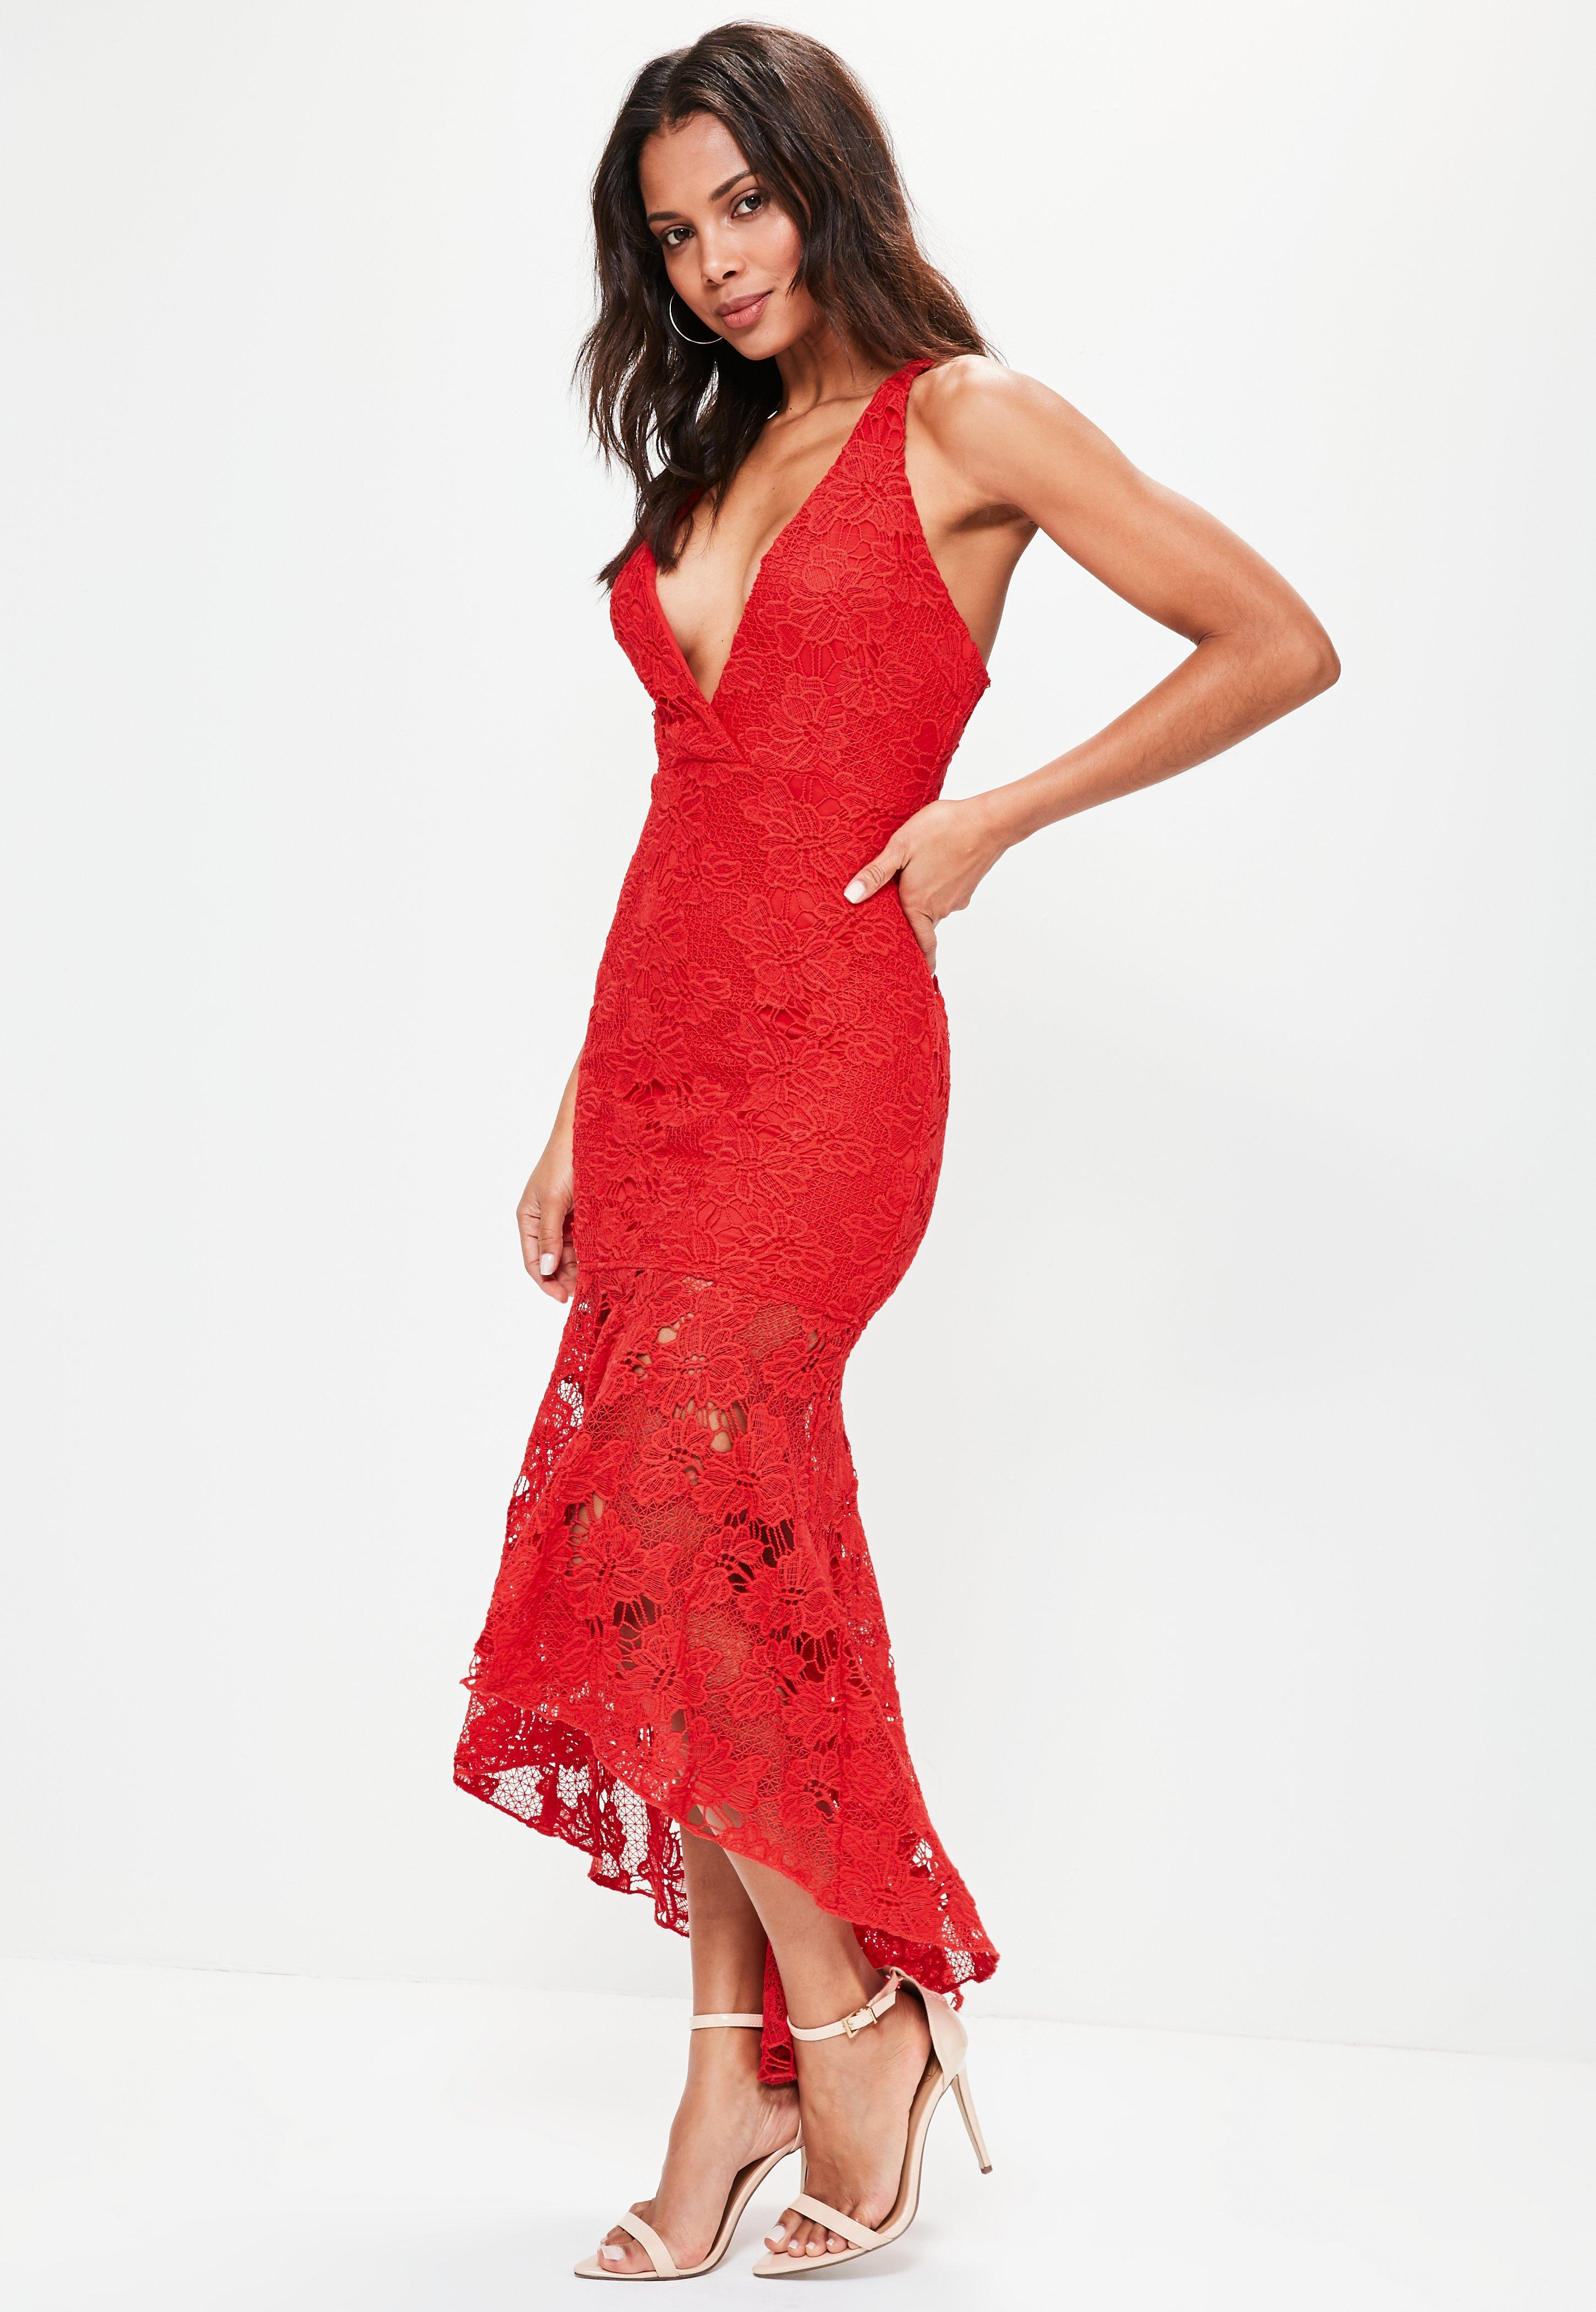 Red Lace Tail Dress Foto And Picture. Modest Red Lace Tail Dress With Sleeves  2208 9079a4196